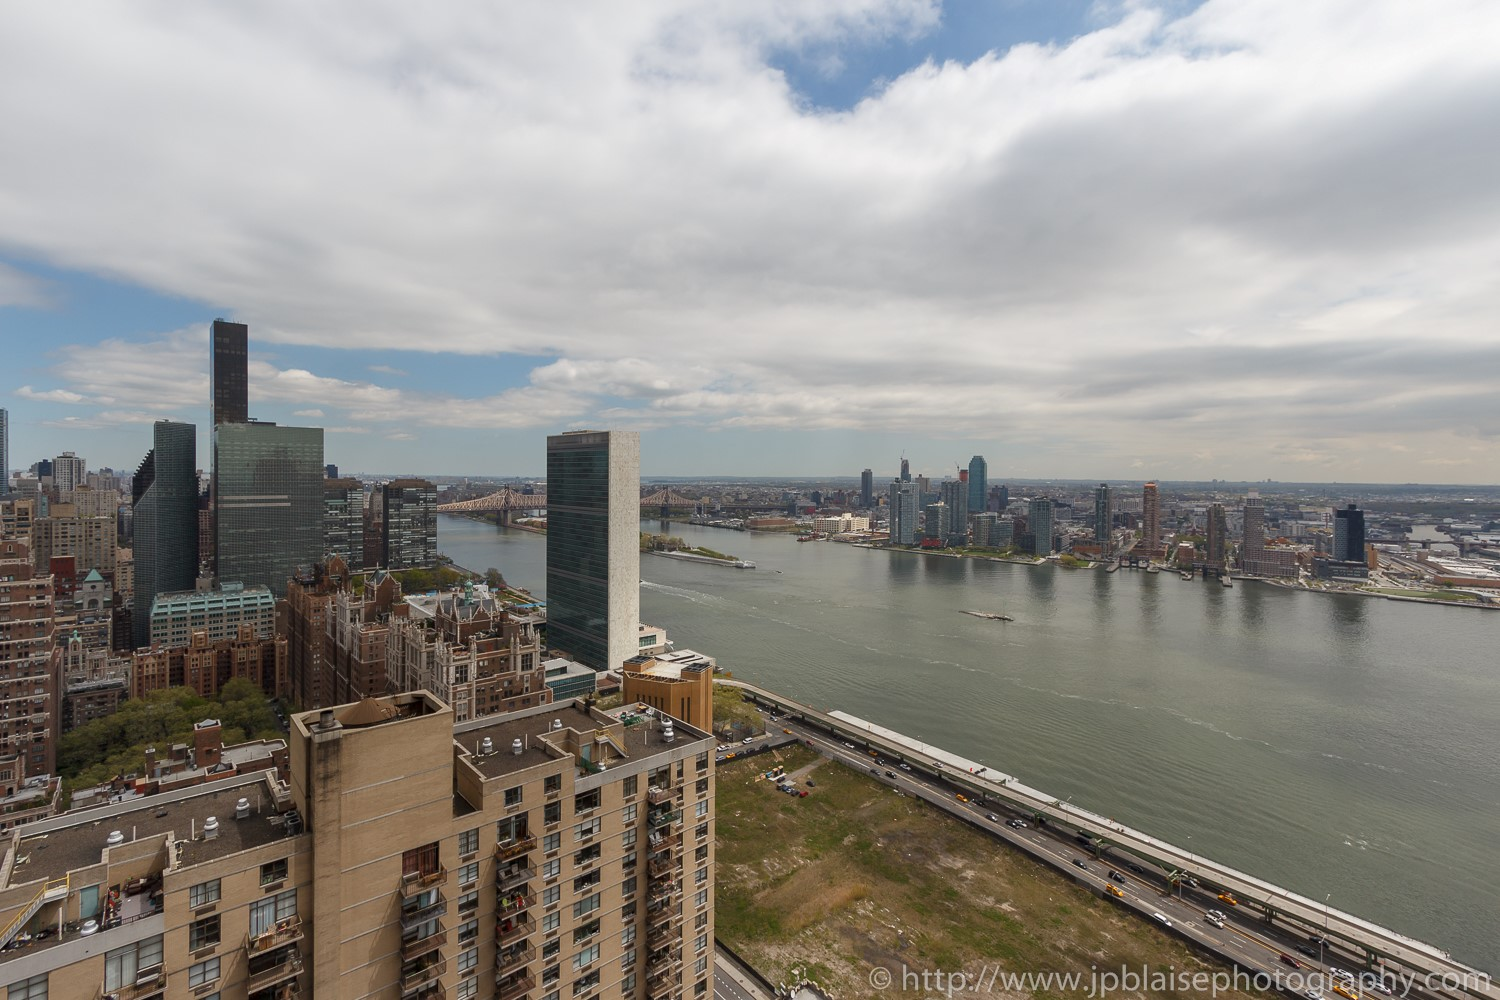 Interior photographer work studio apartment in midtown east New York east river views